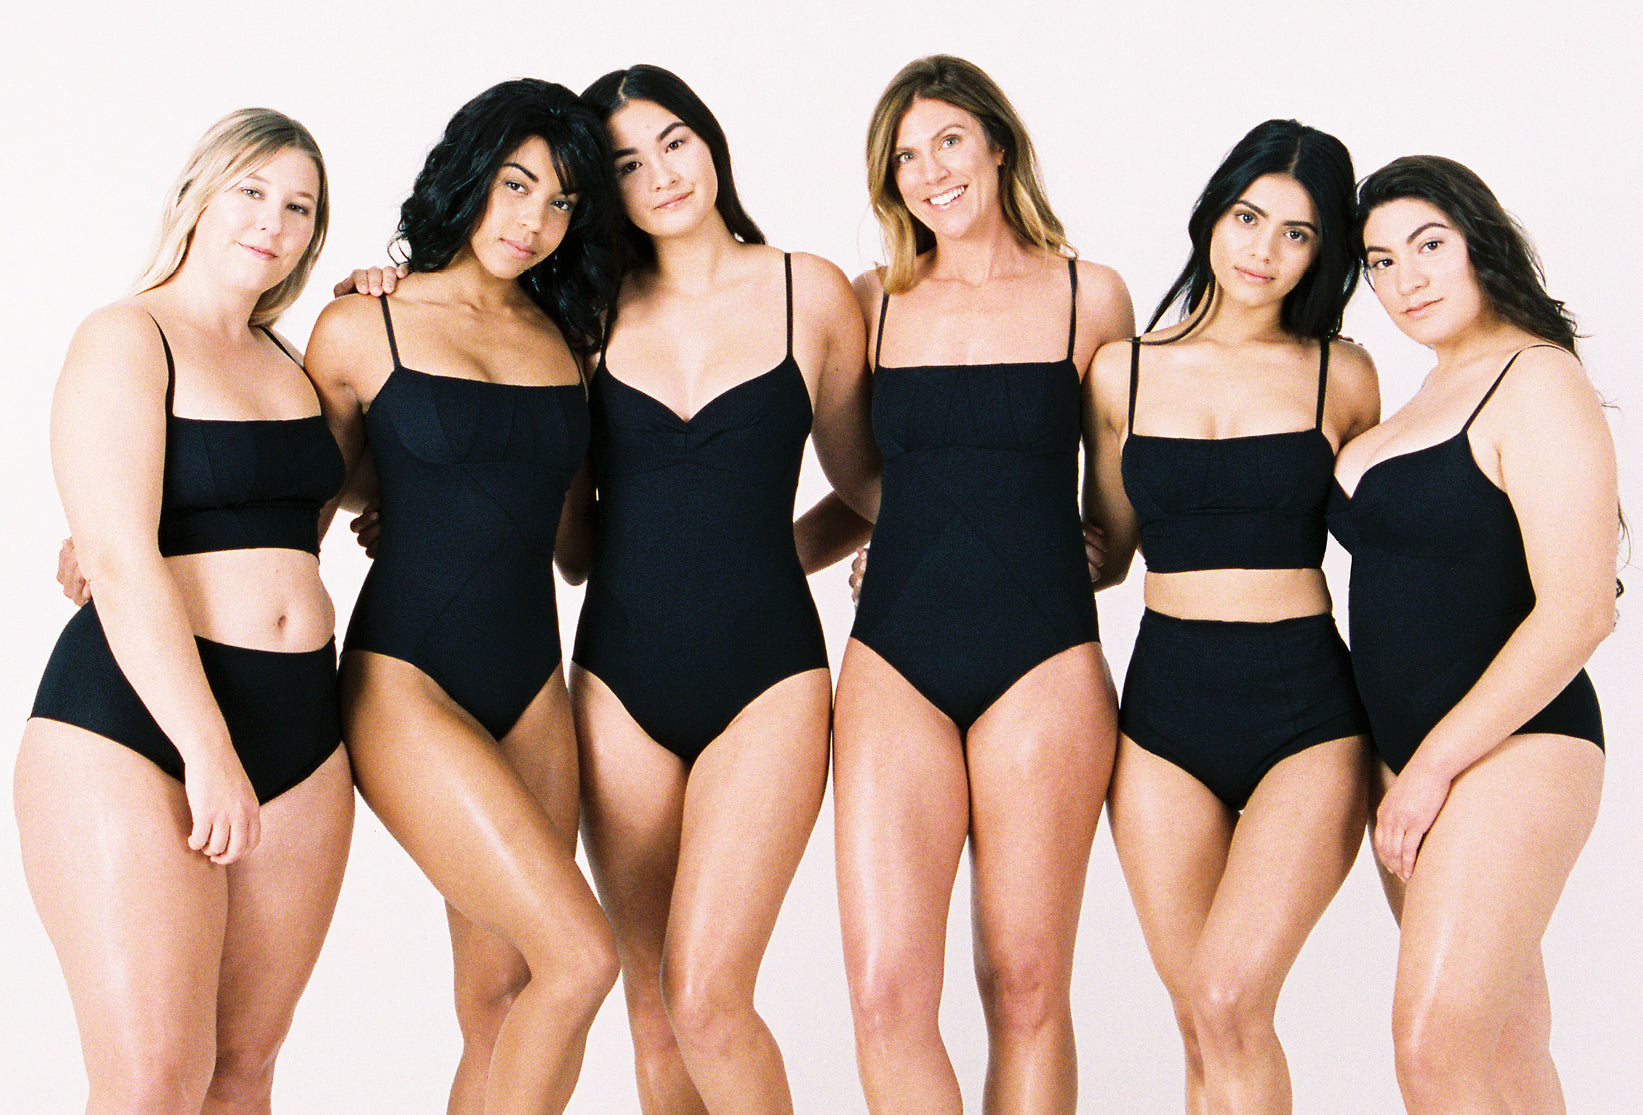 514e96175c7 Allow us to introduce you to the amazing women behind our Muse BodySculpt  campaign. These women will have you feeling empowered, beautiful + inspired  (and ...